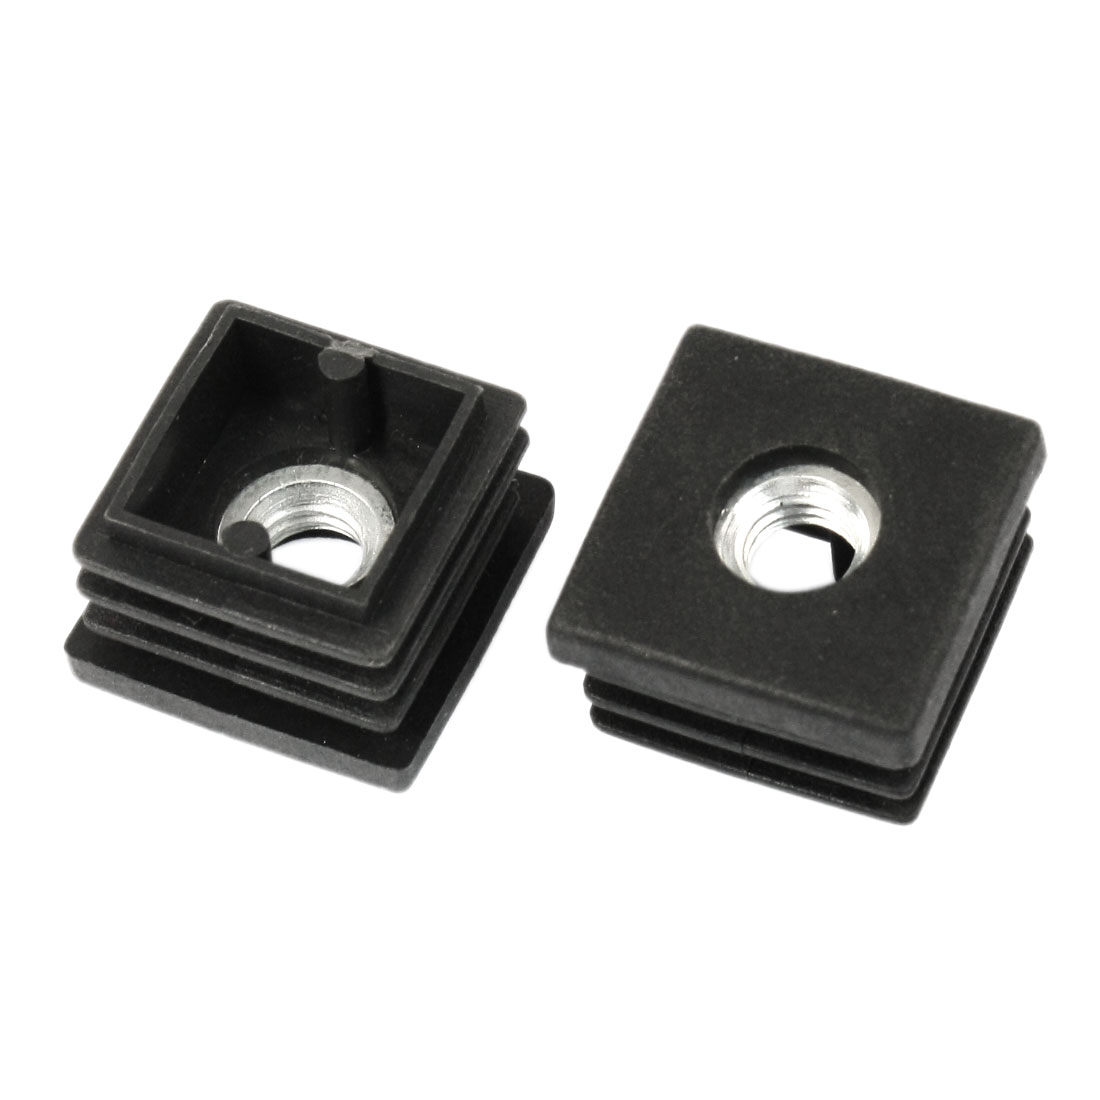 2Pcs 8mm M8 Thread Square Blanking End Caps Tubing Tube Inserts 25mm x 25mm